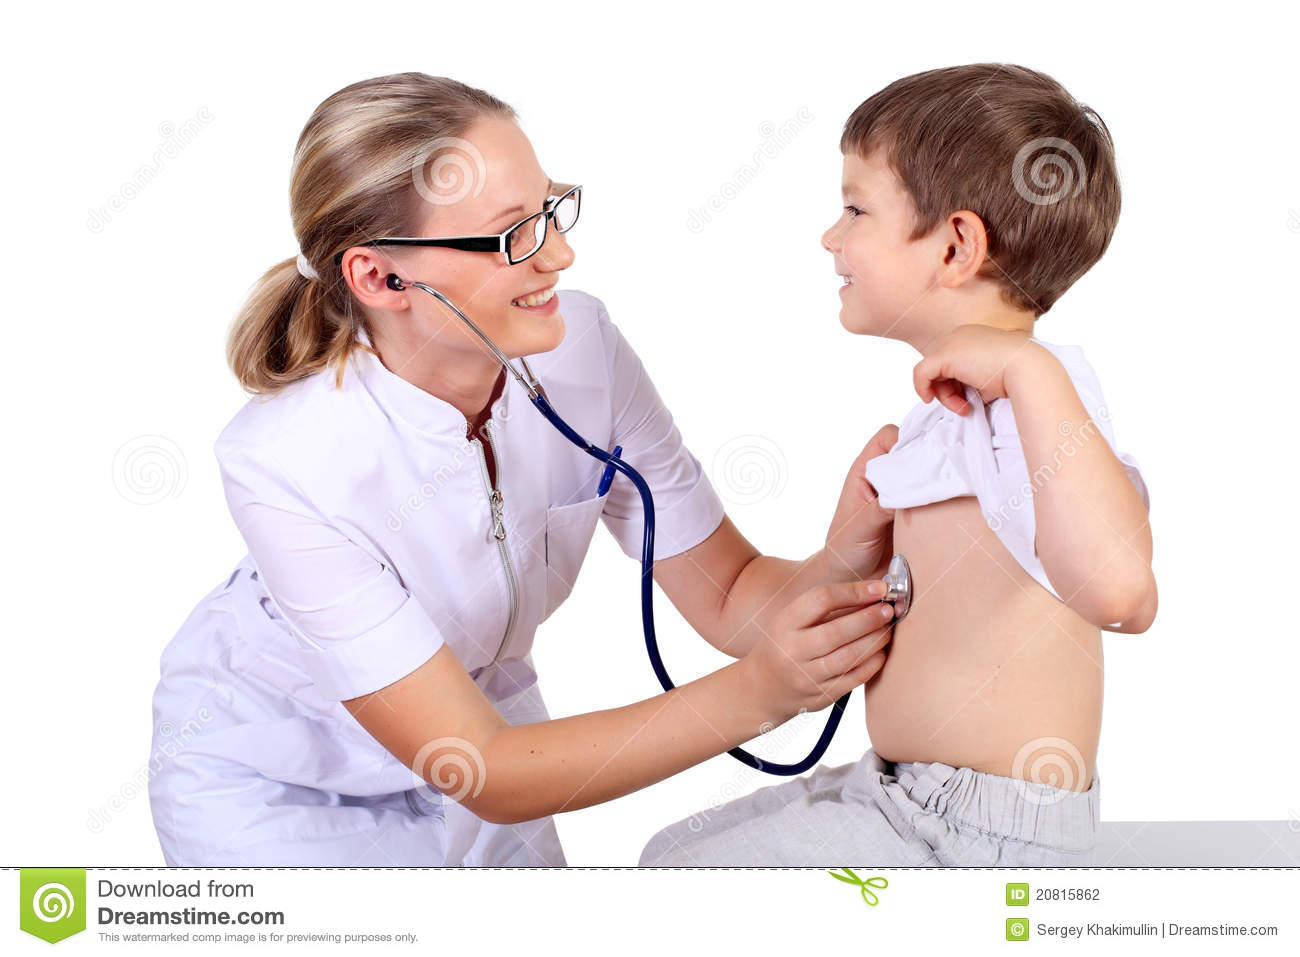 picture of female medical examination